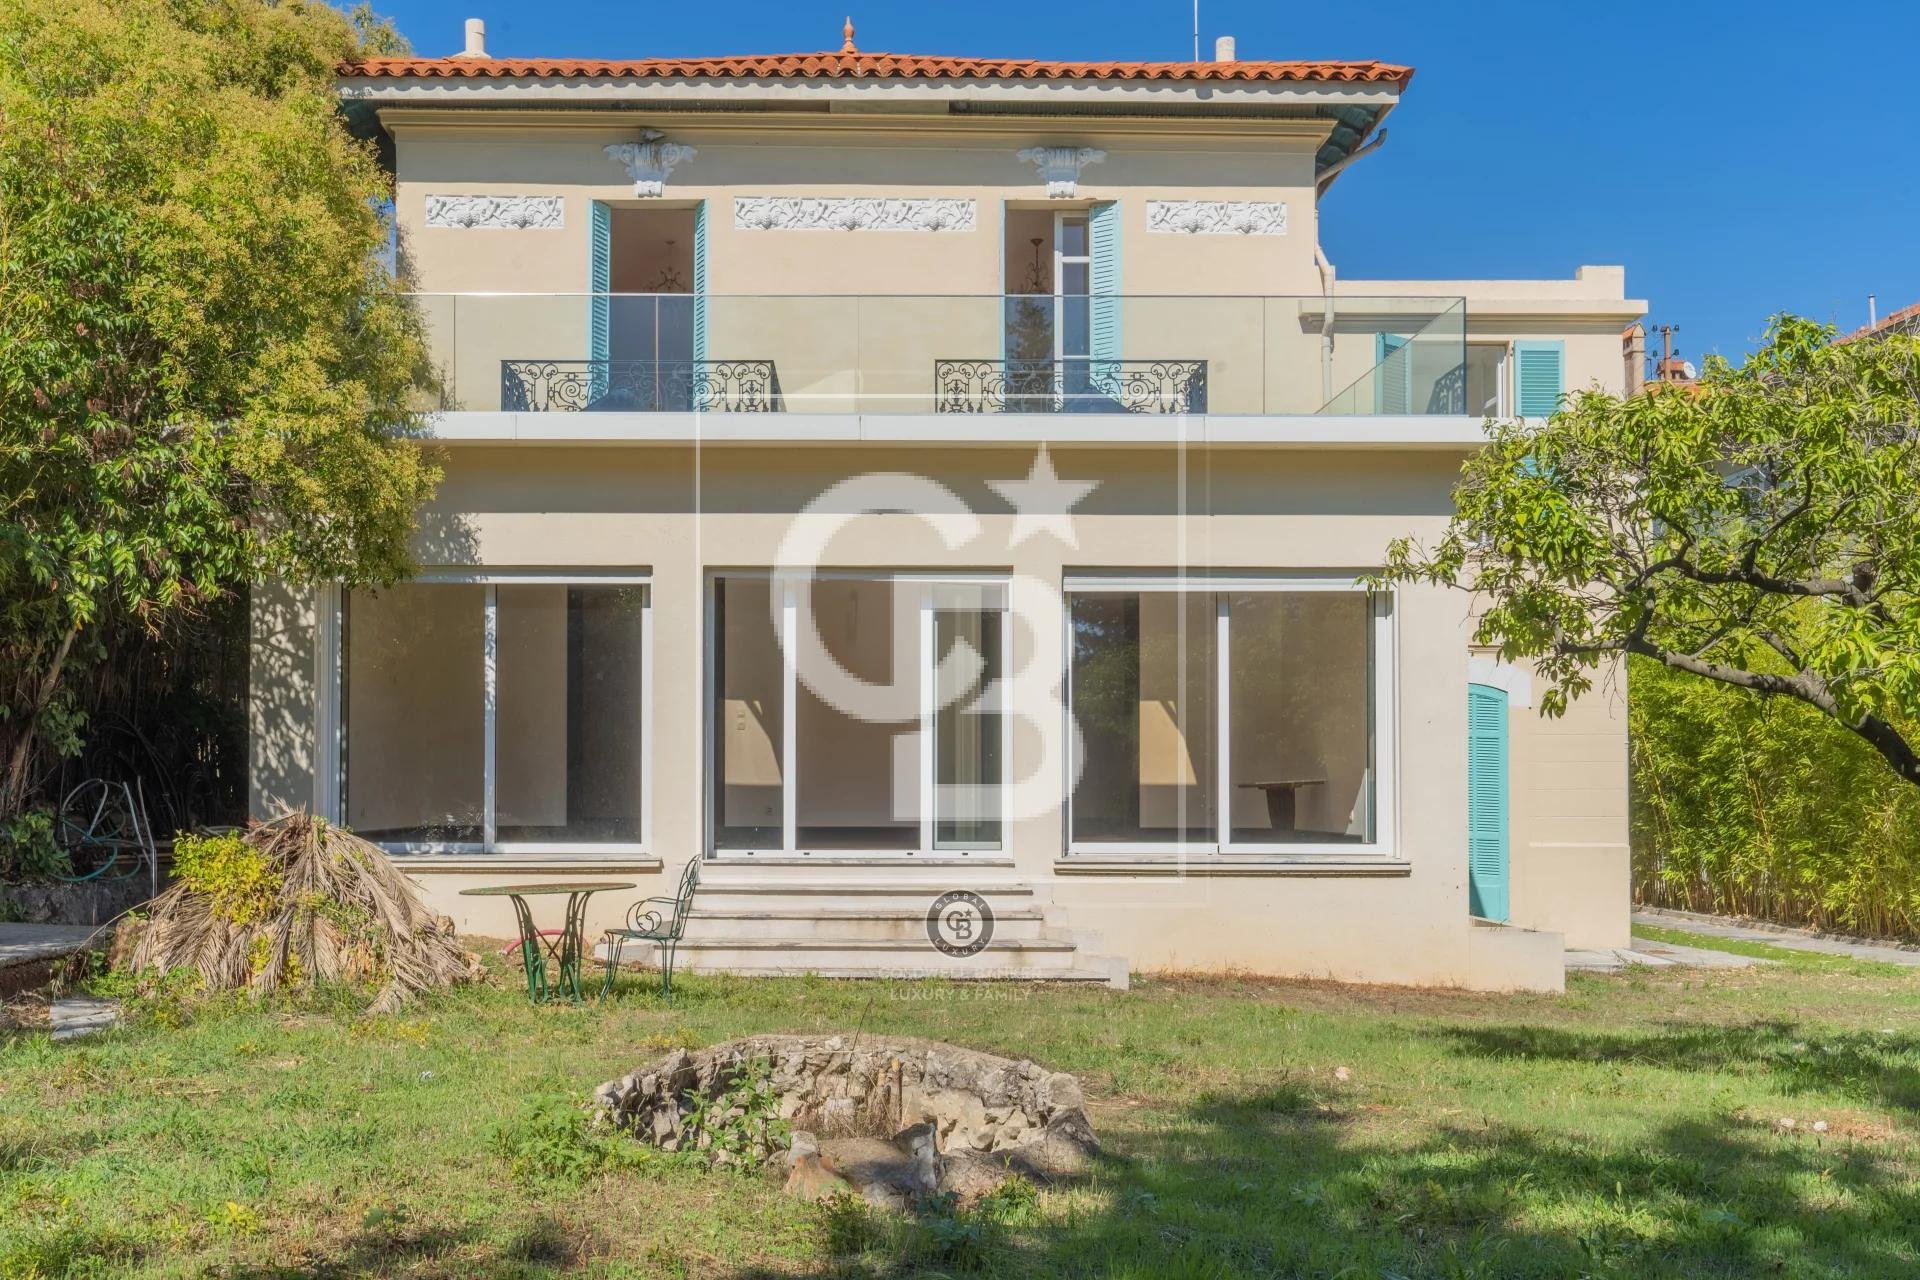 Cannes - Le Cannet -  Bourgeoise style house